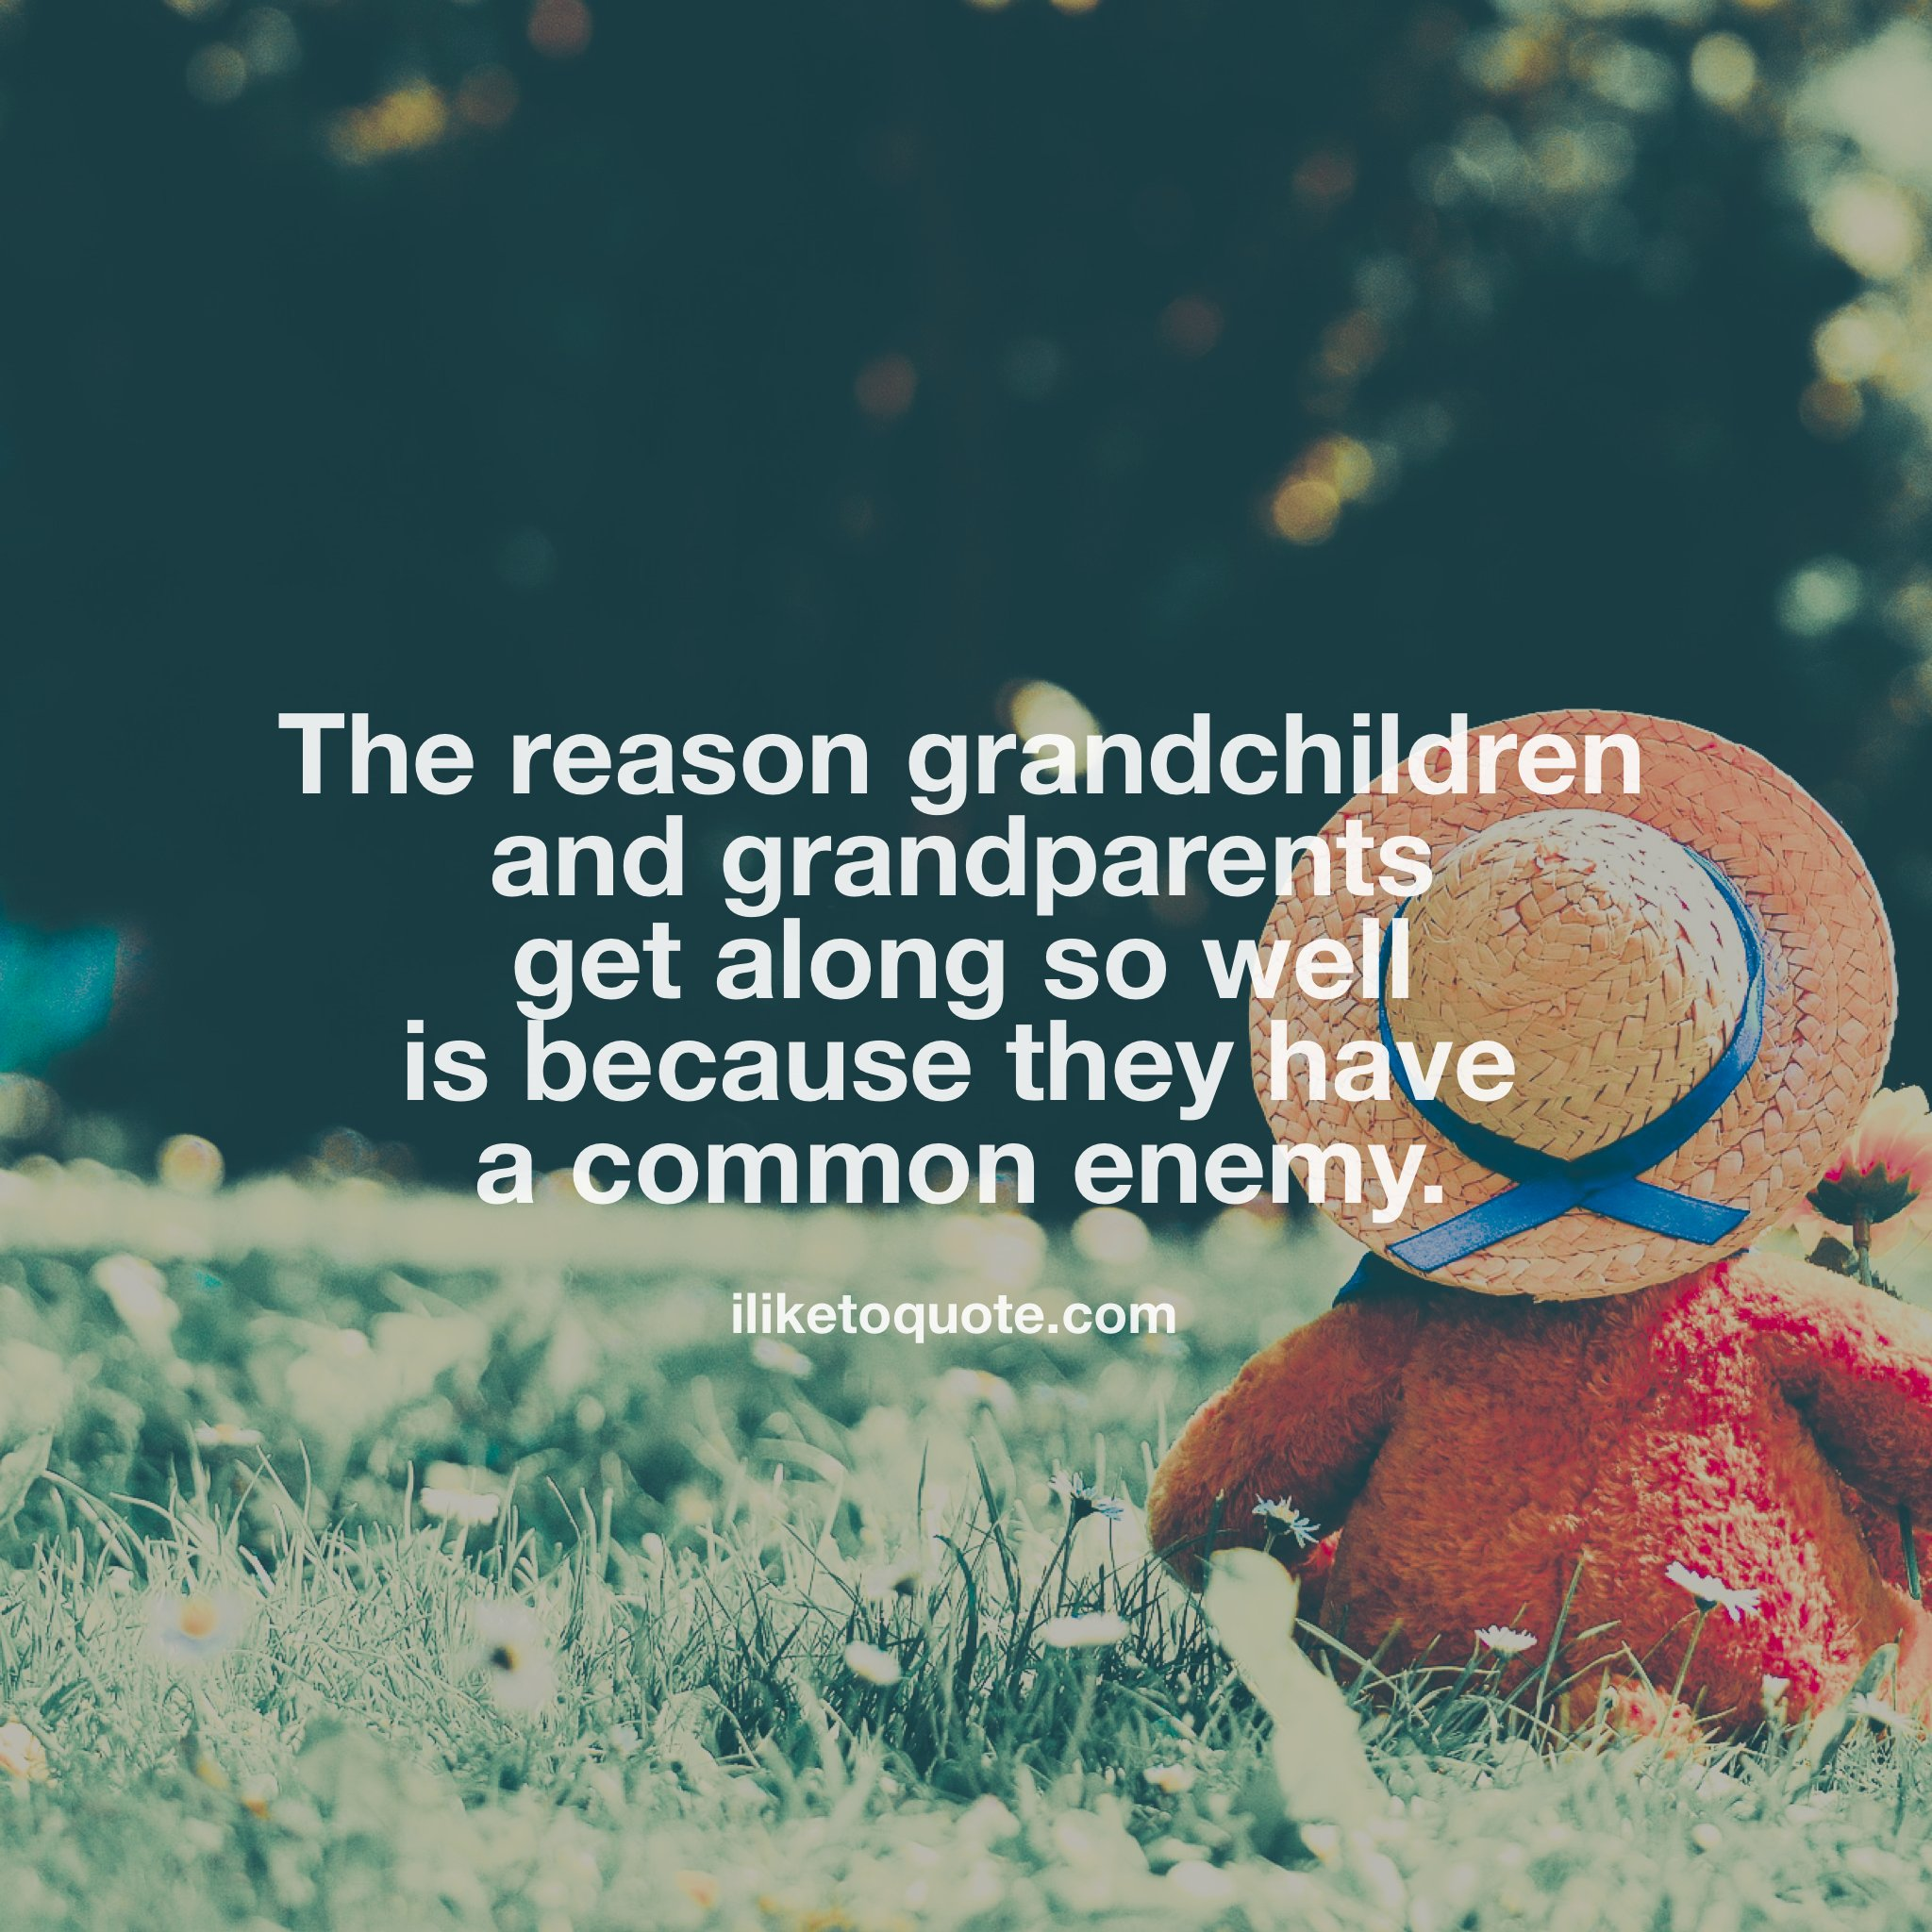 The reason grandchildren and grandparents get along so well is because they have a common enemy.